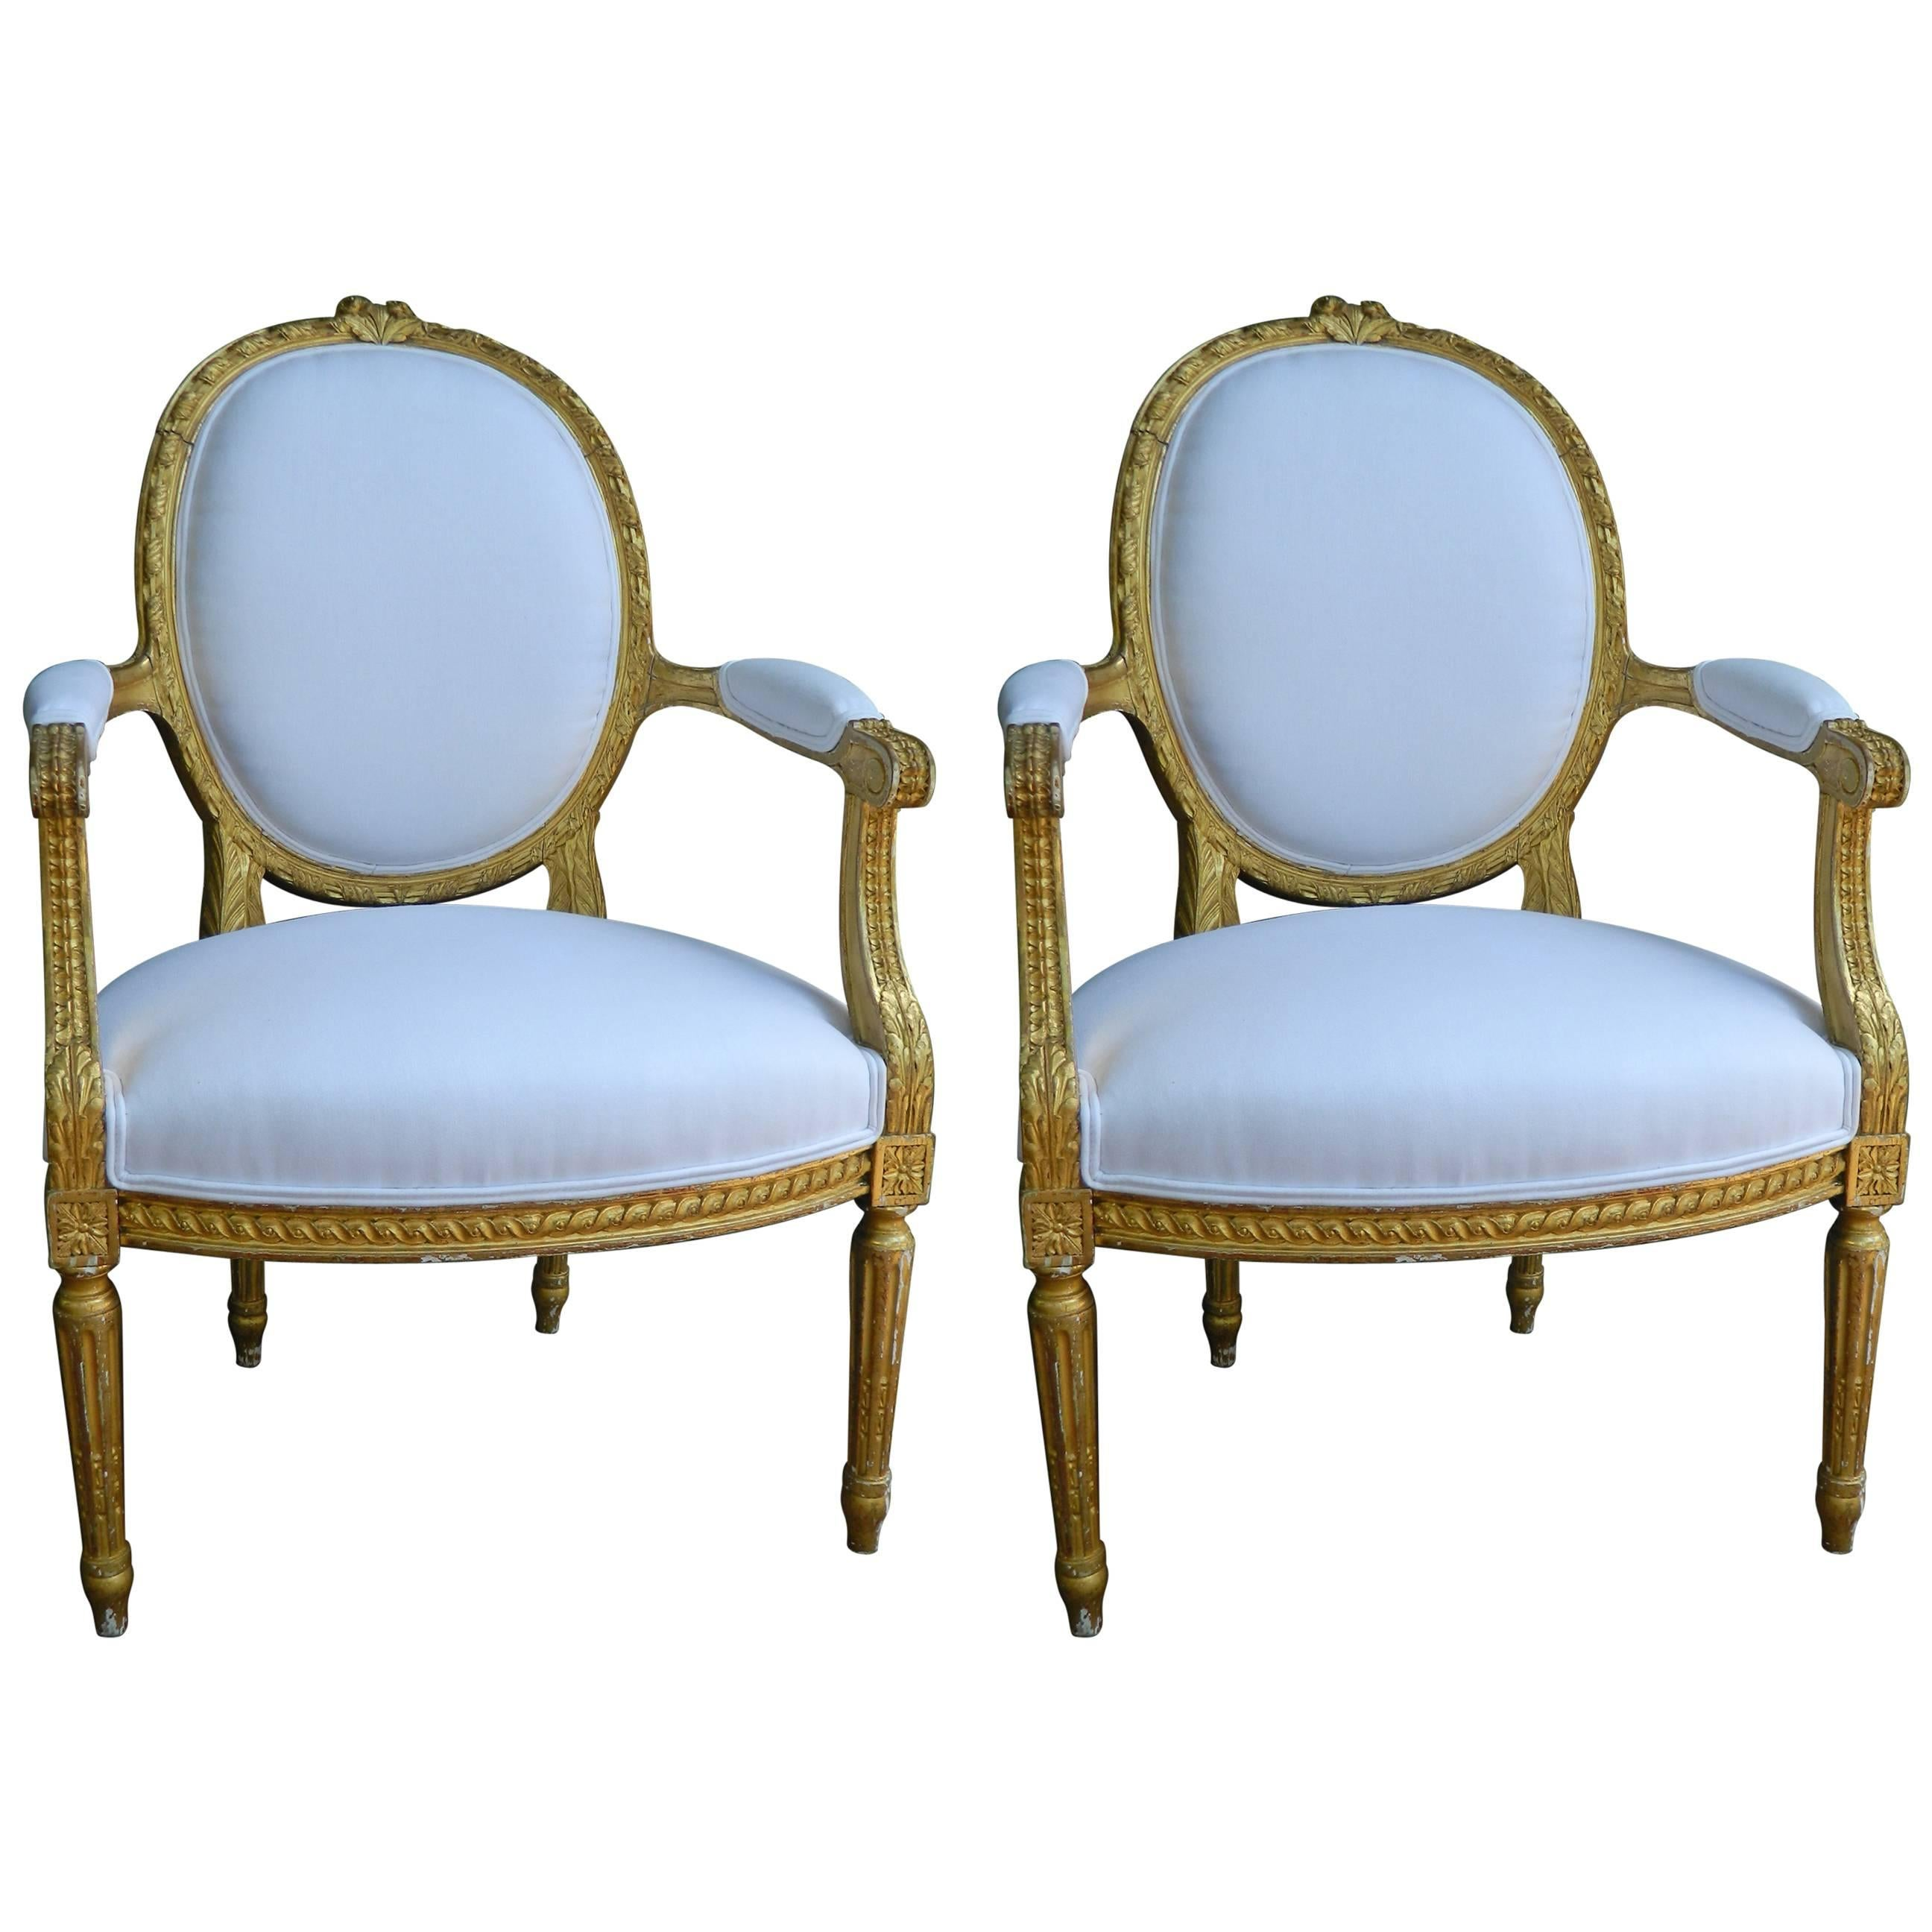 Pair of Louis XVI Style Giltwood Armchairs, 19th Century